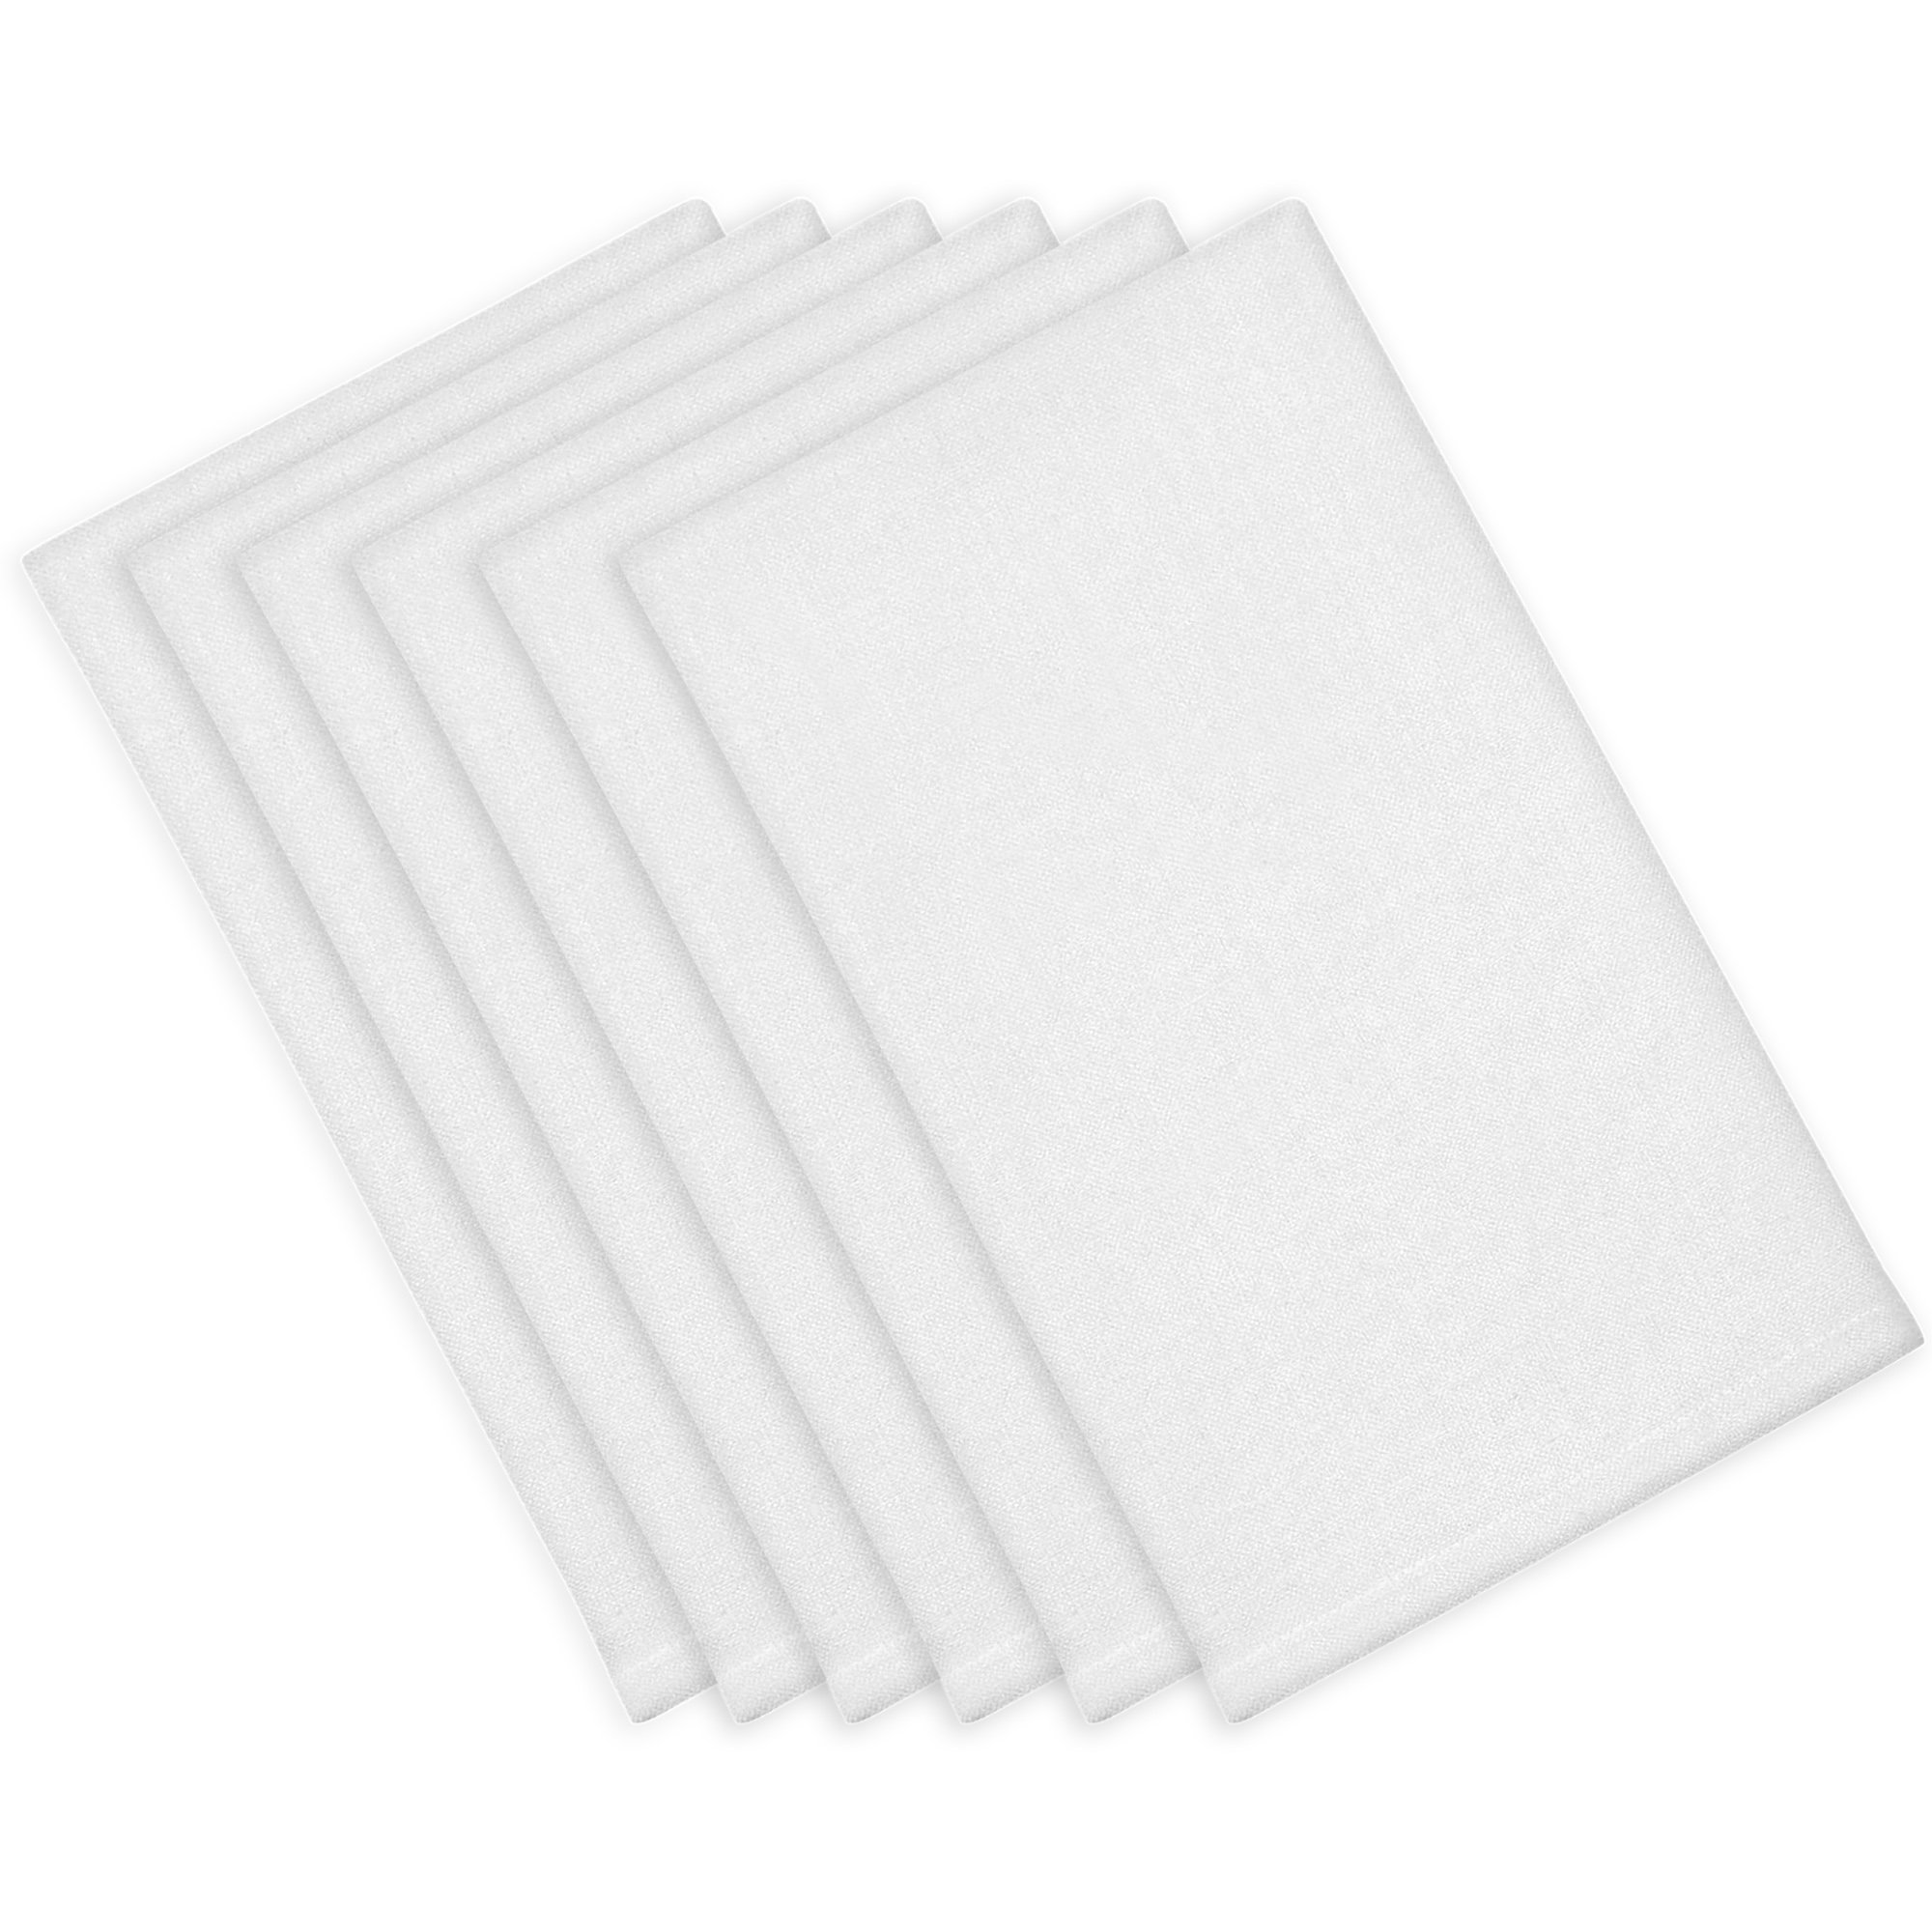 ITOS365 Cotton Dinner Napkins White - 12 Pack (18 inches x18 inches) Soft and Comfortable - Durable Hotel Quality - Ideal for Events and Regular Home Use